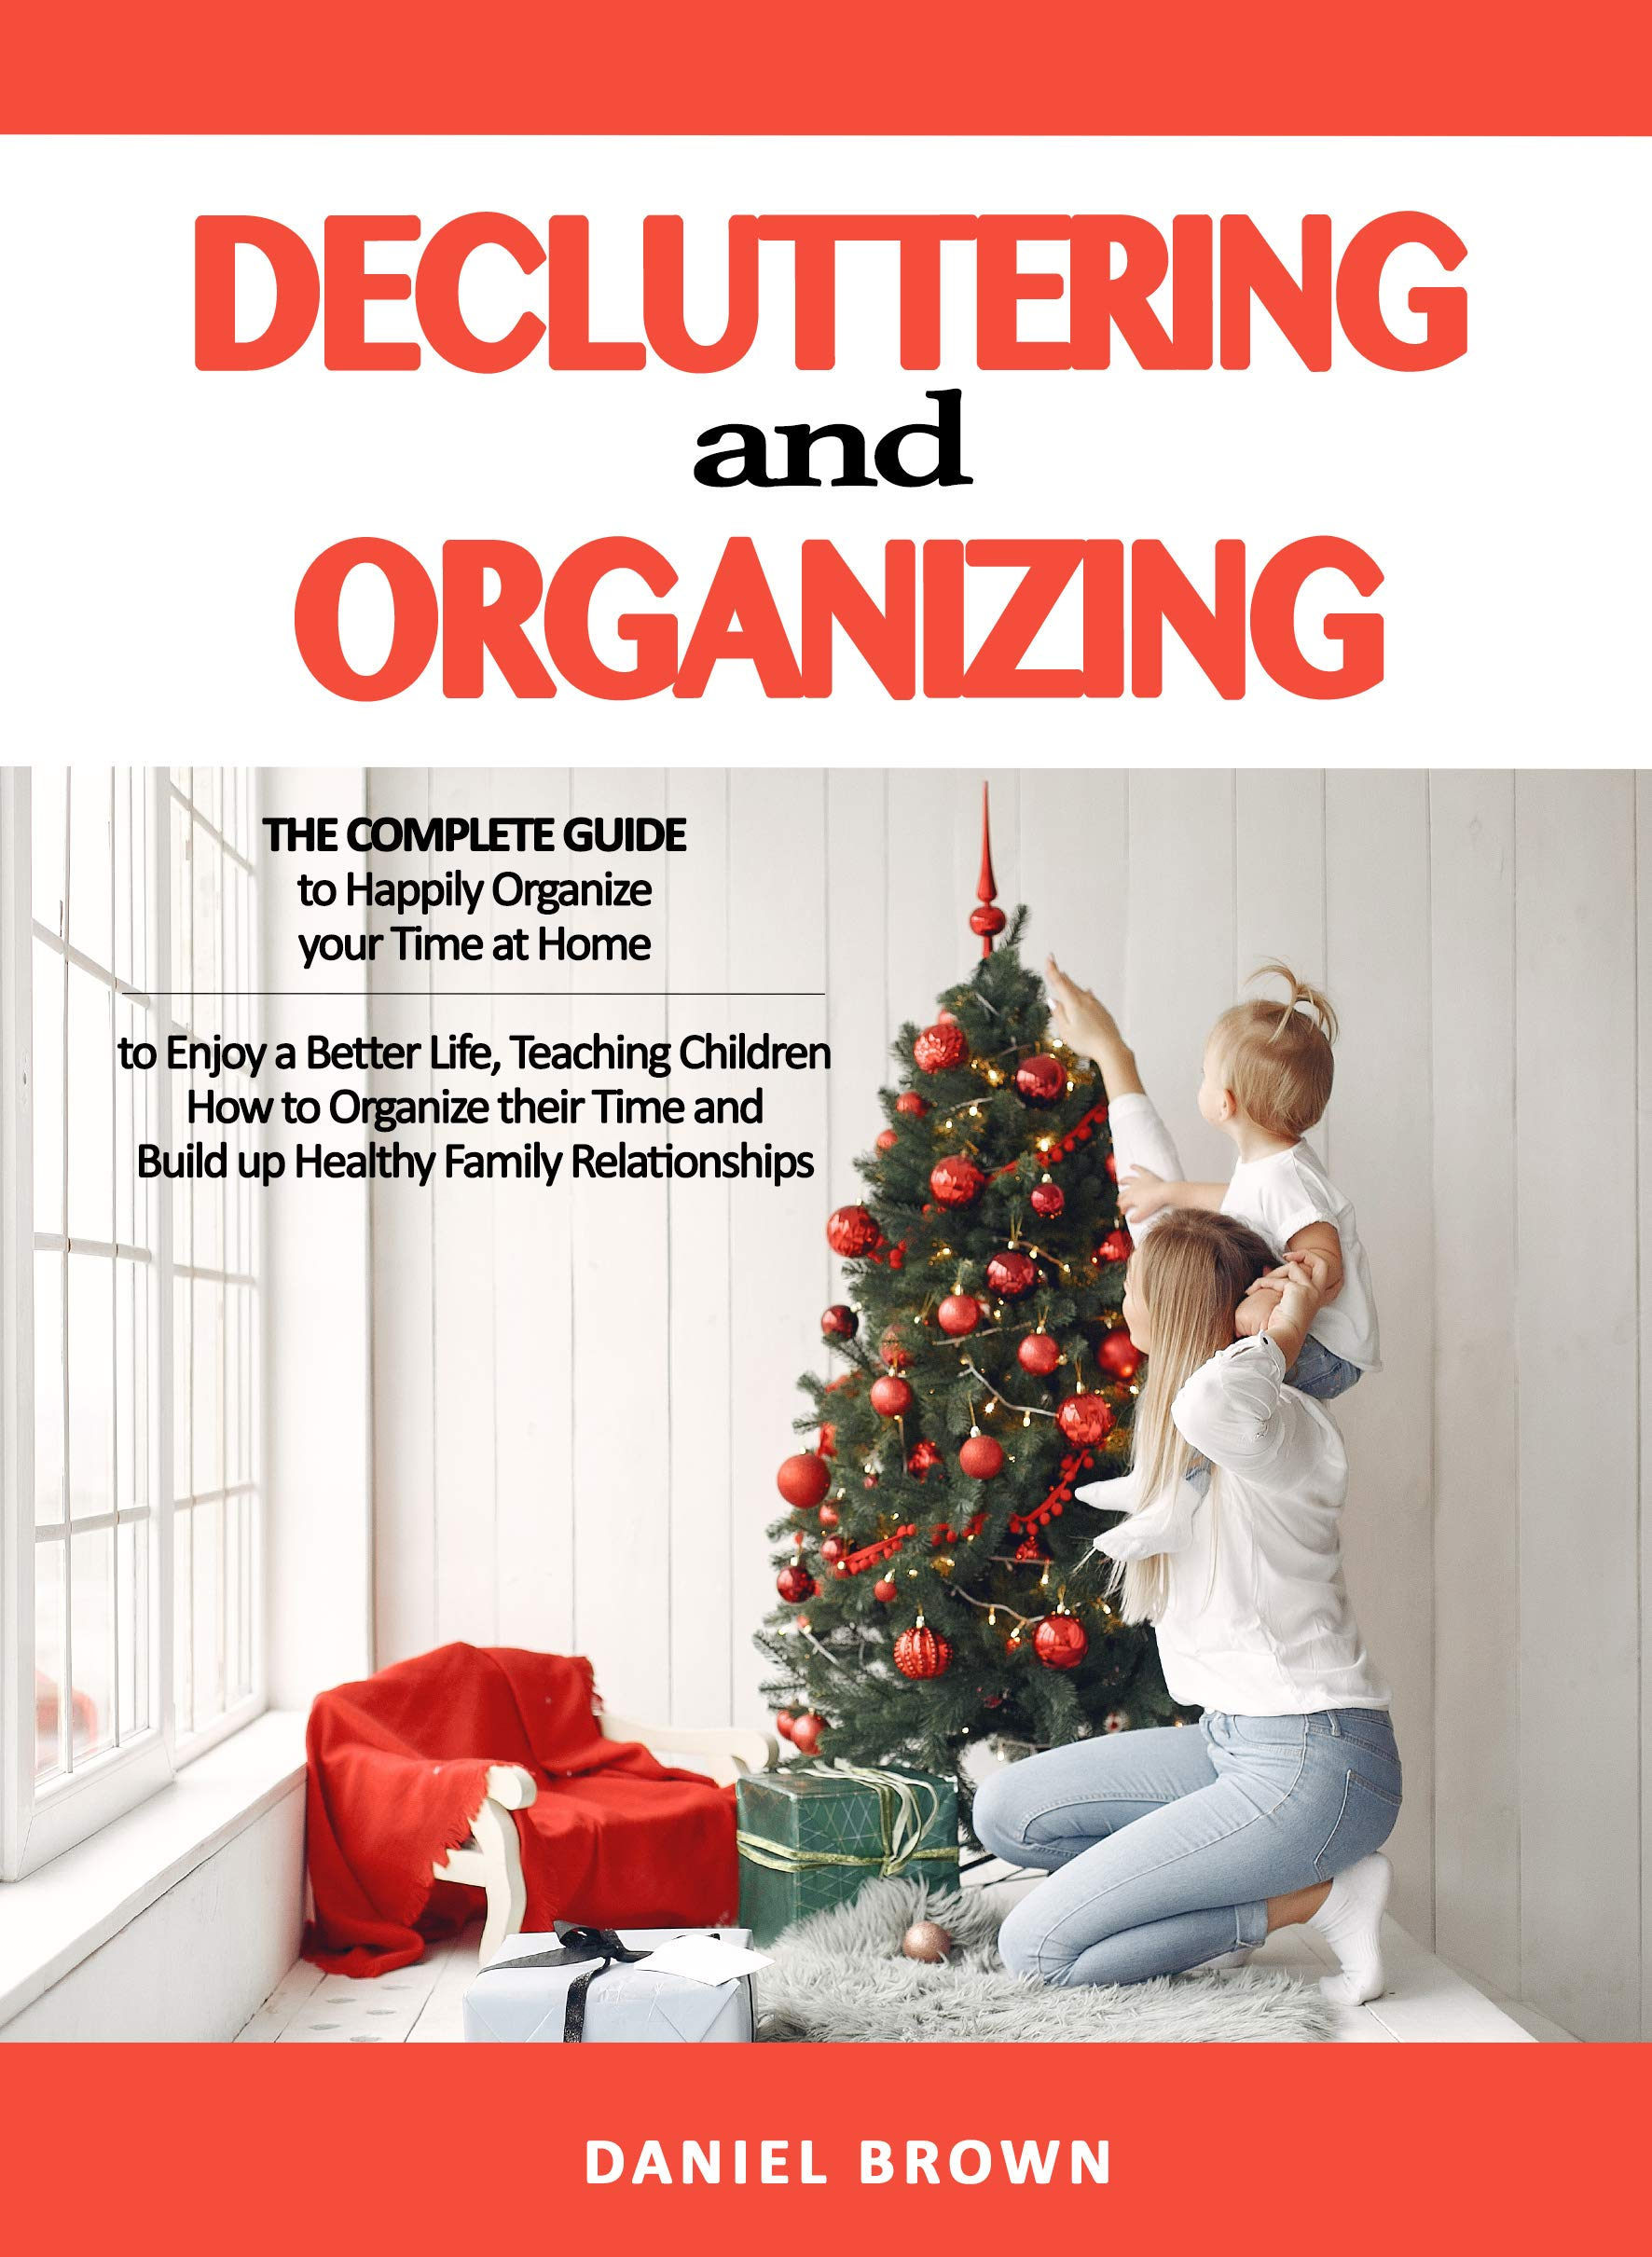 Decluttering And Organizing: The Complete Guide to Happily Organize your Time at Home to Enjoy a Better Life, Teaching Children How to Organize their Time and Build up Healthy Family Relationships